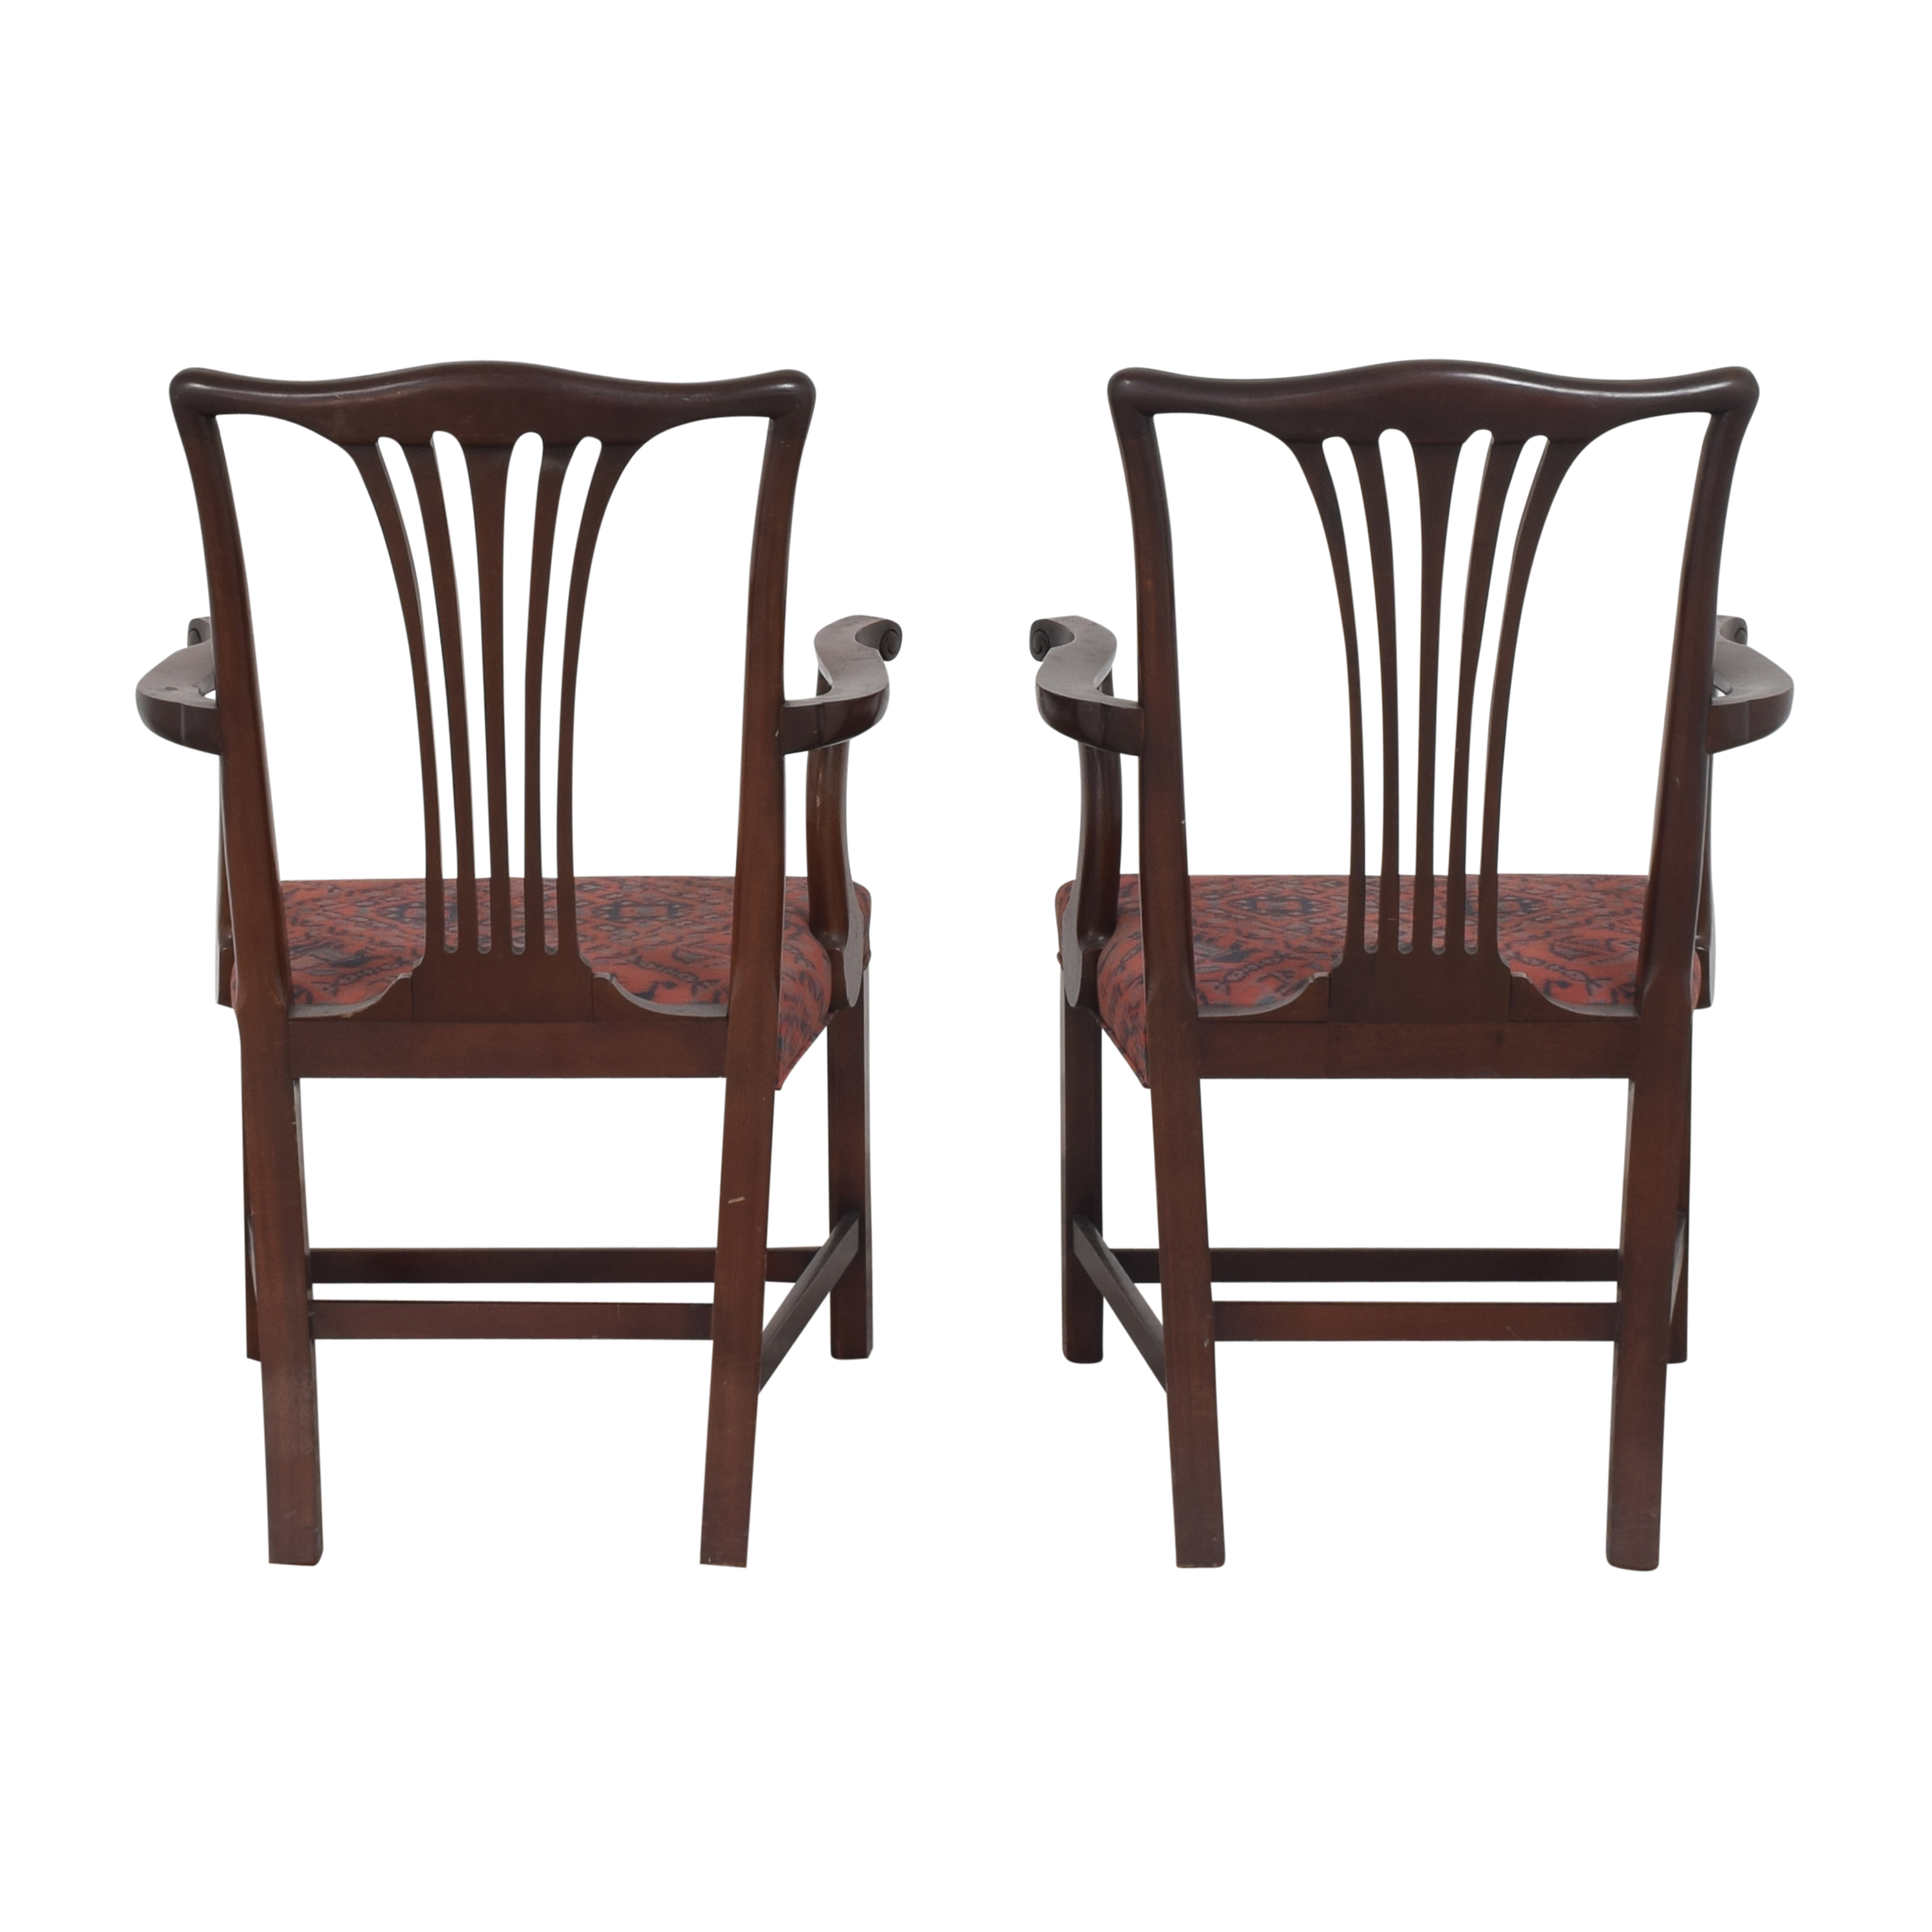 Wood & Hogan Wood & Hogan Country Chippendale Dining Arm Chairs second hand